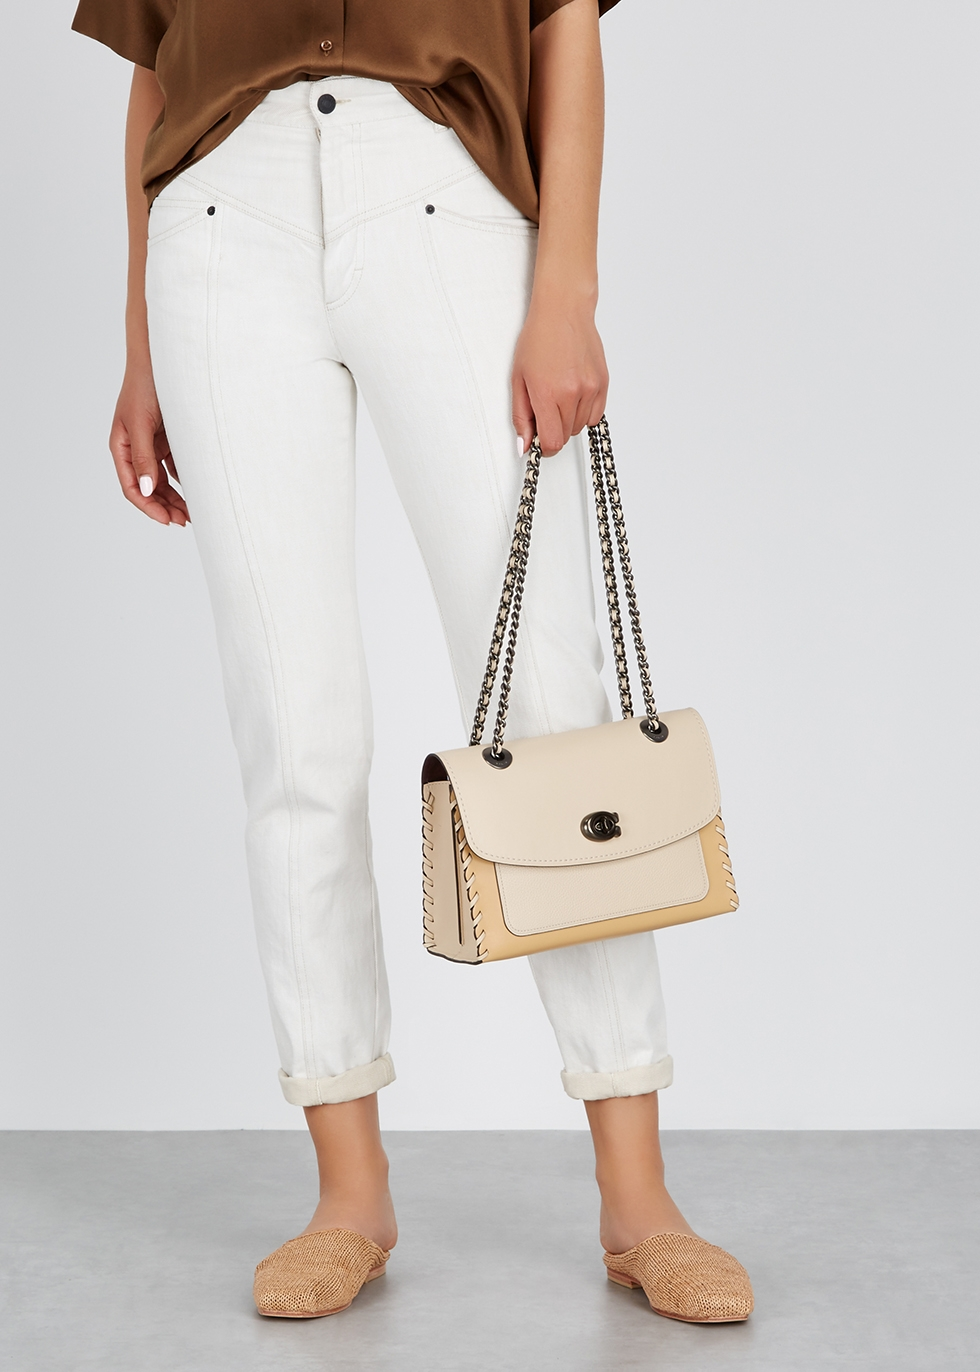 Parker ivory leather shoulder bag - Coach